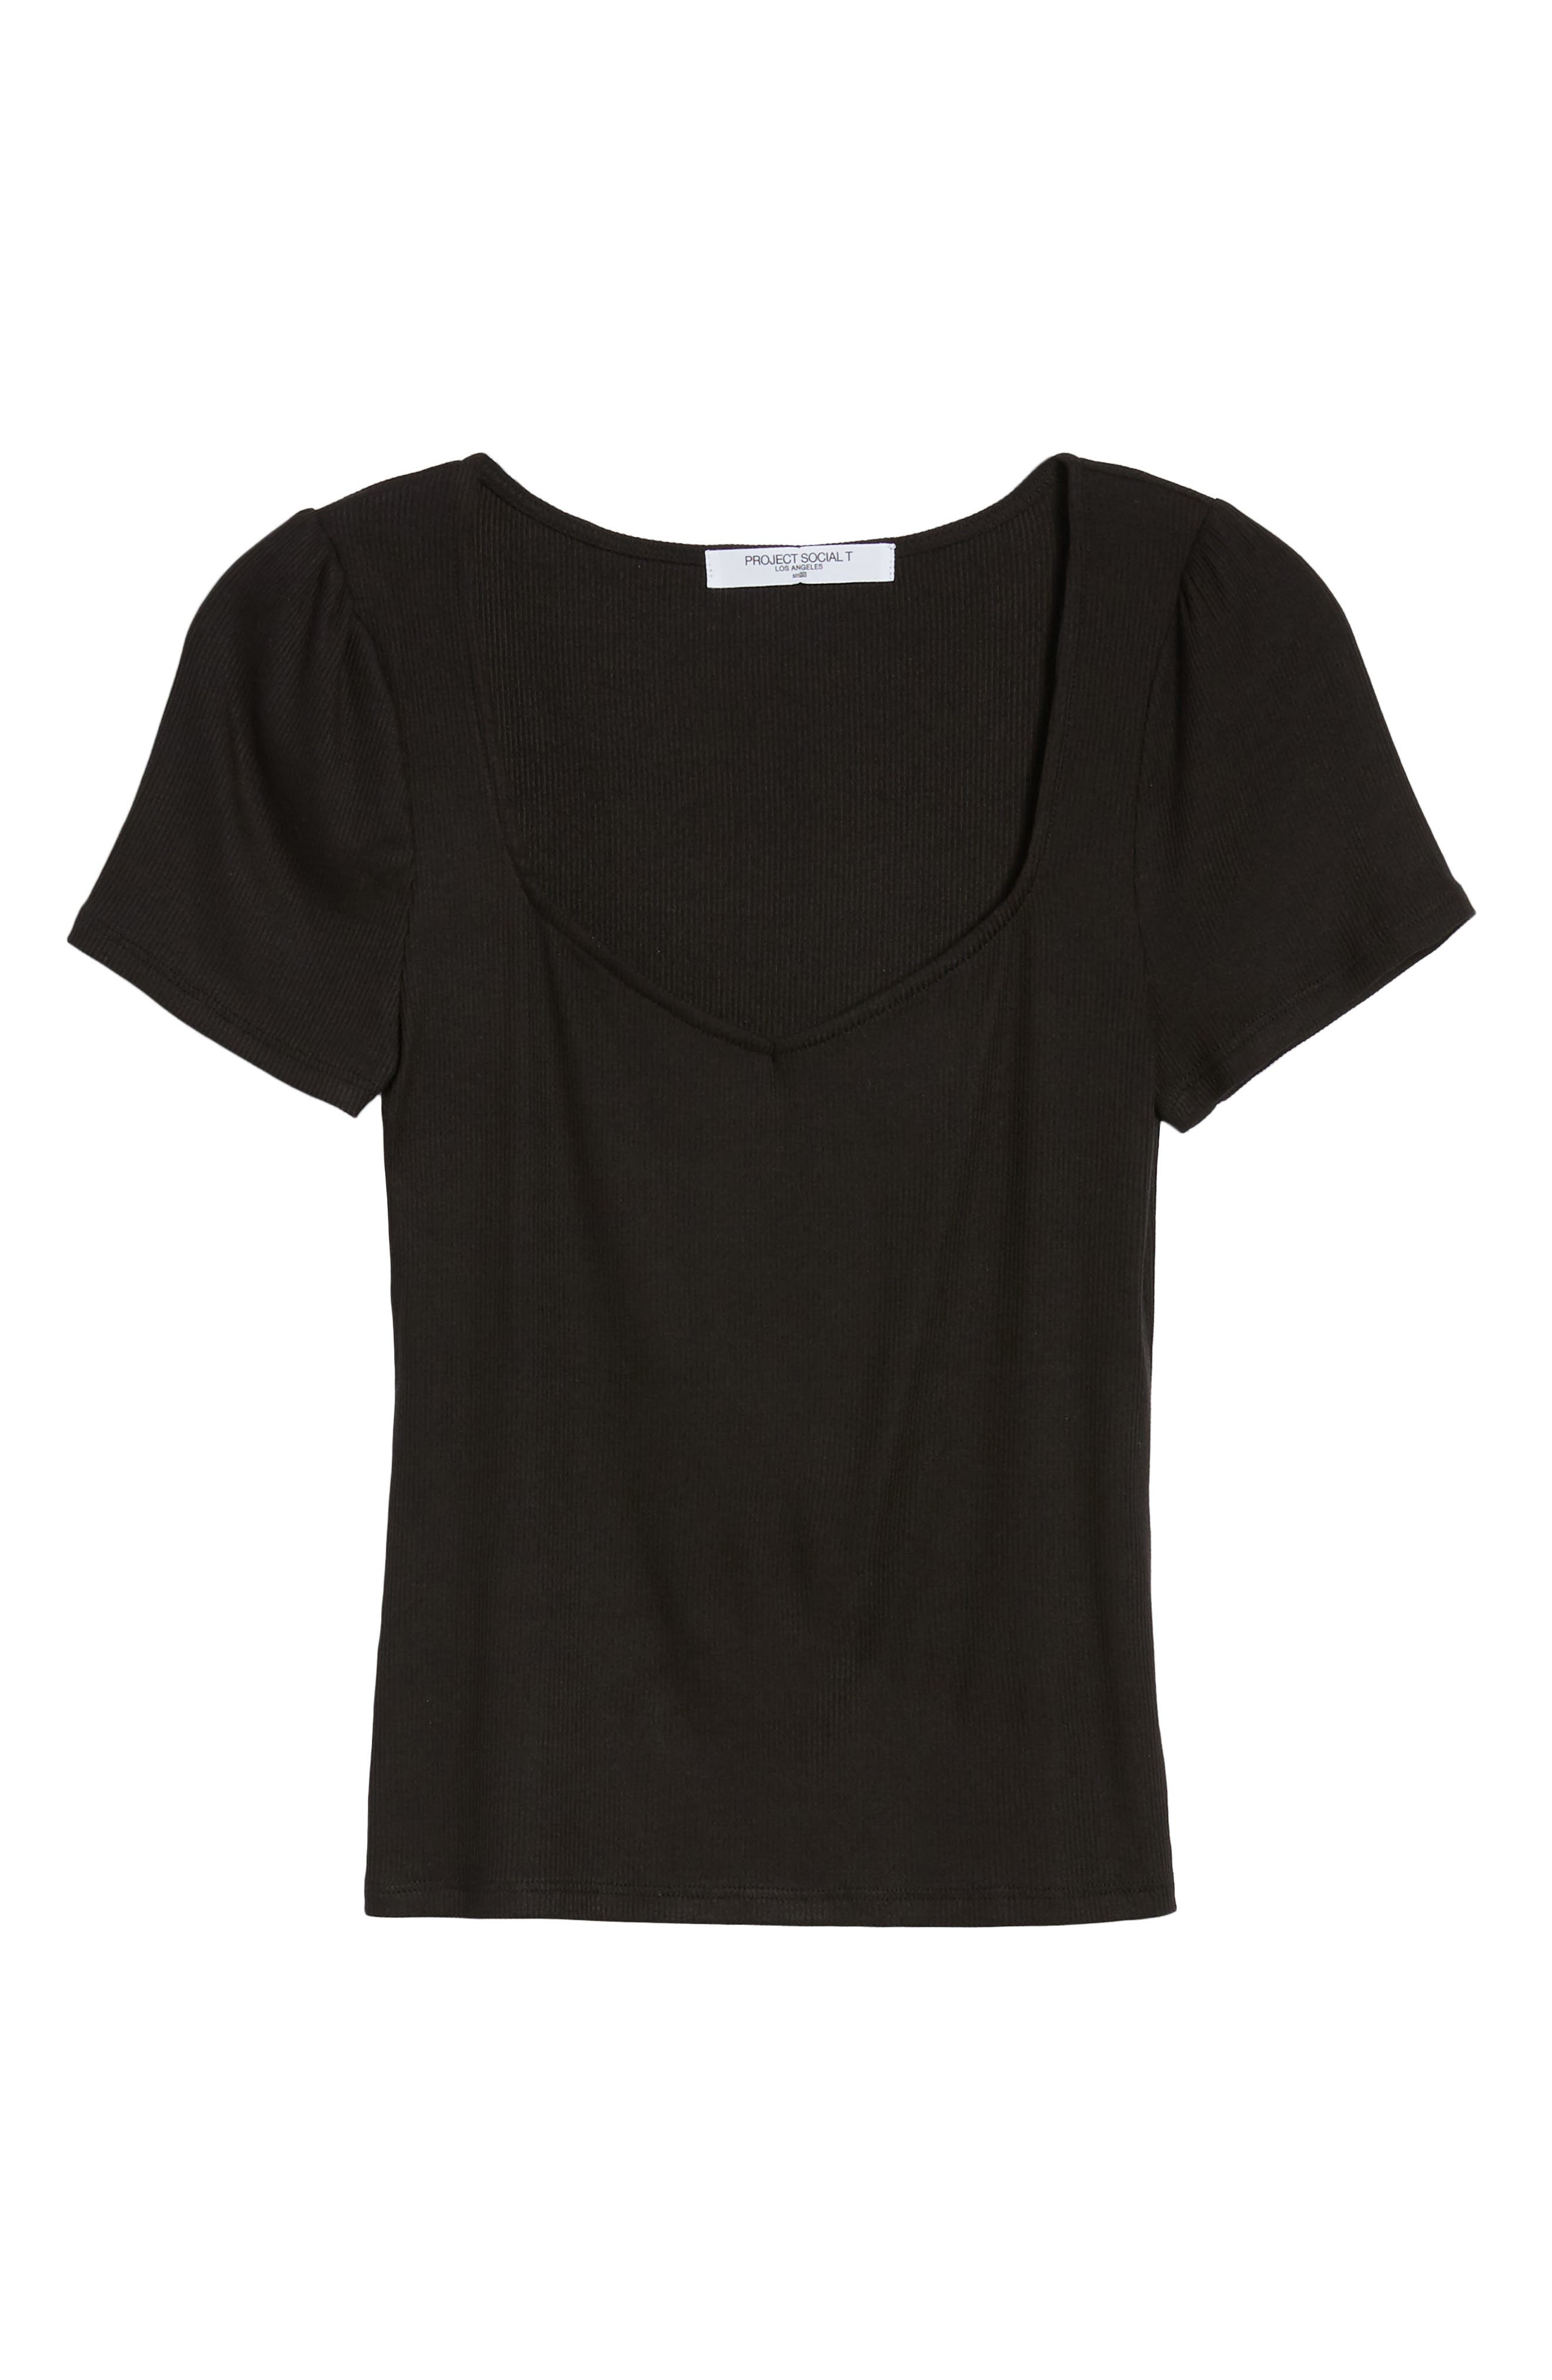 PROJECT SOCIAL T,                             PST by Project Social T Femme Ribbed Tee,                             Alternate thumbnail 6, color,                             001